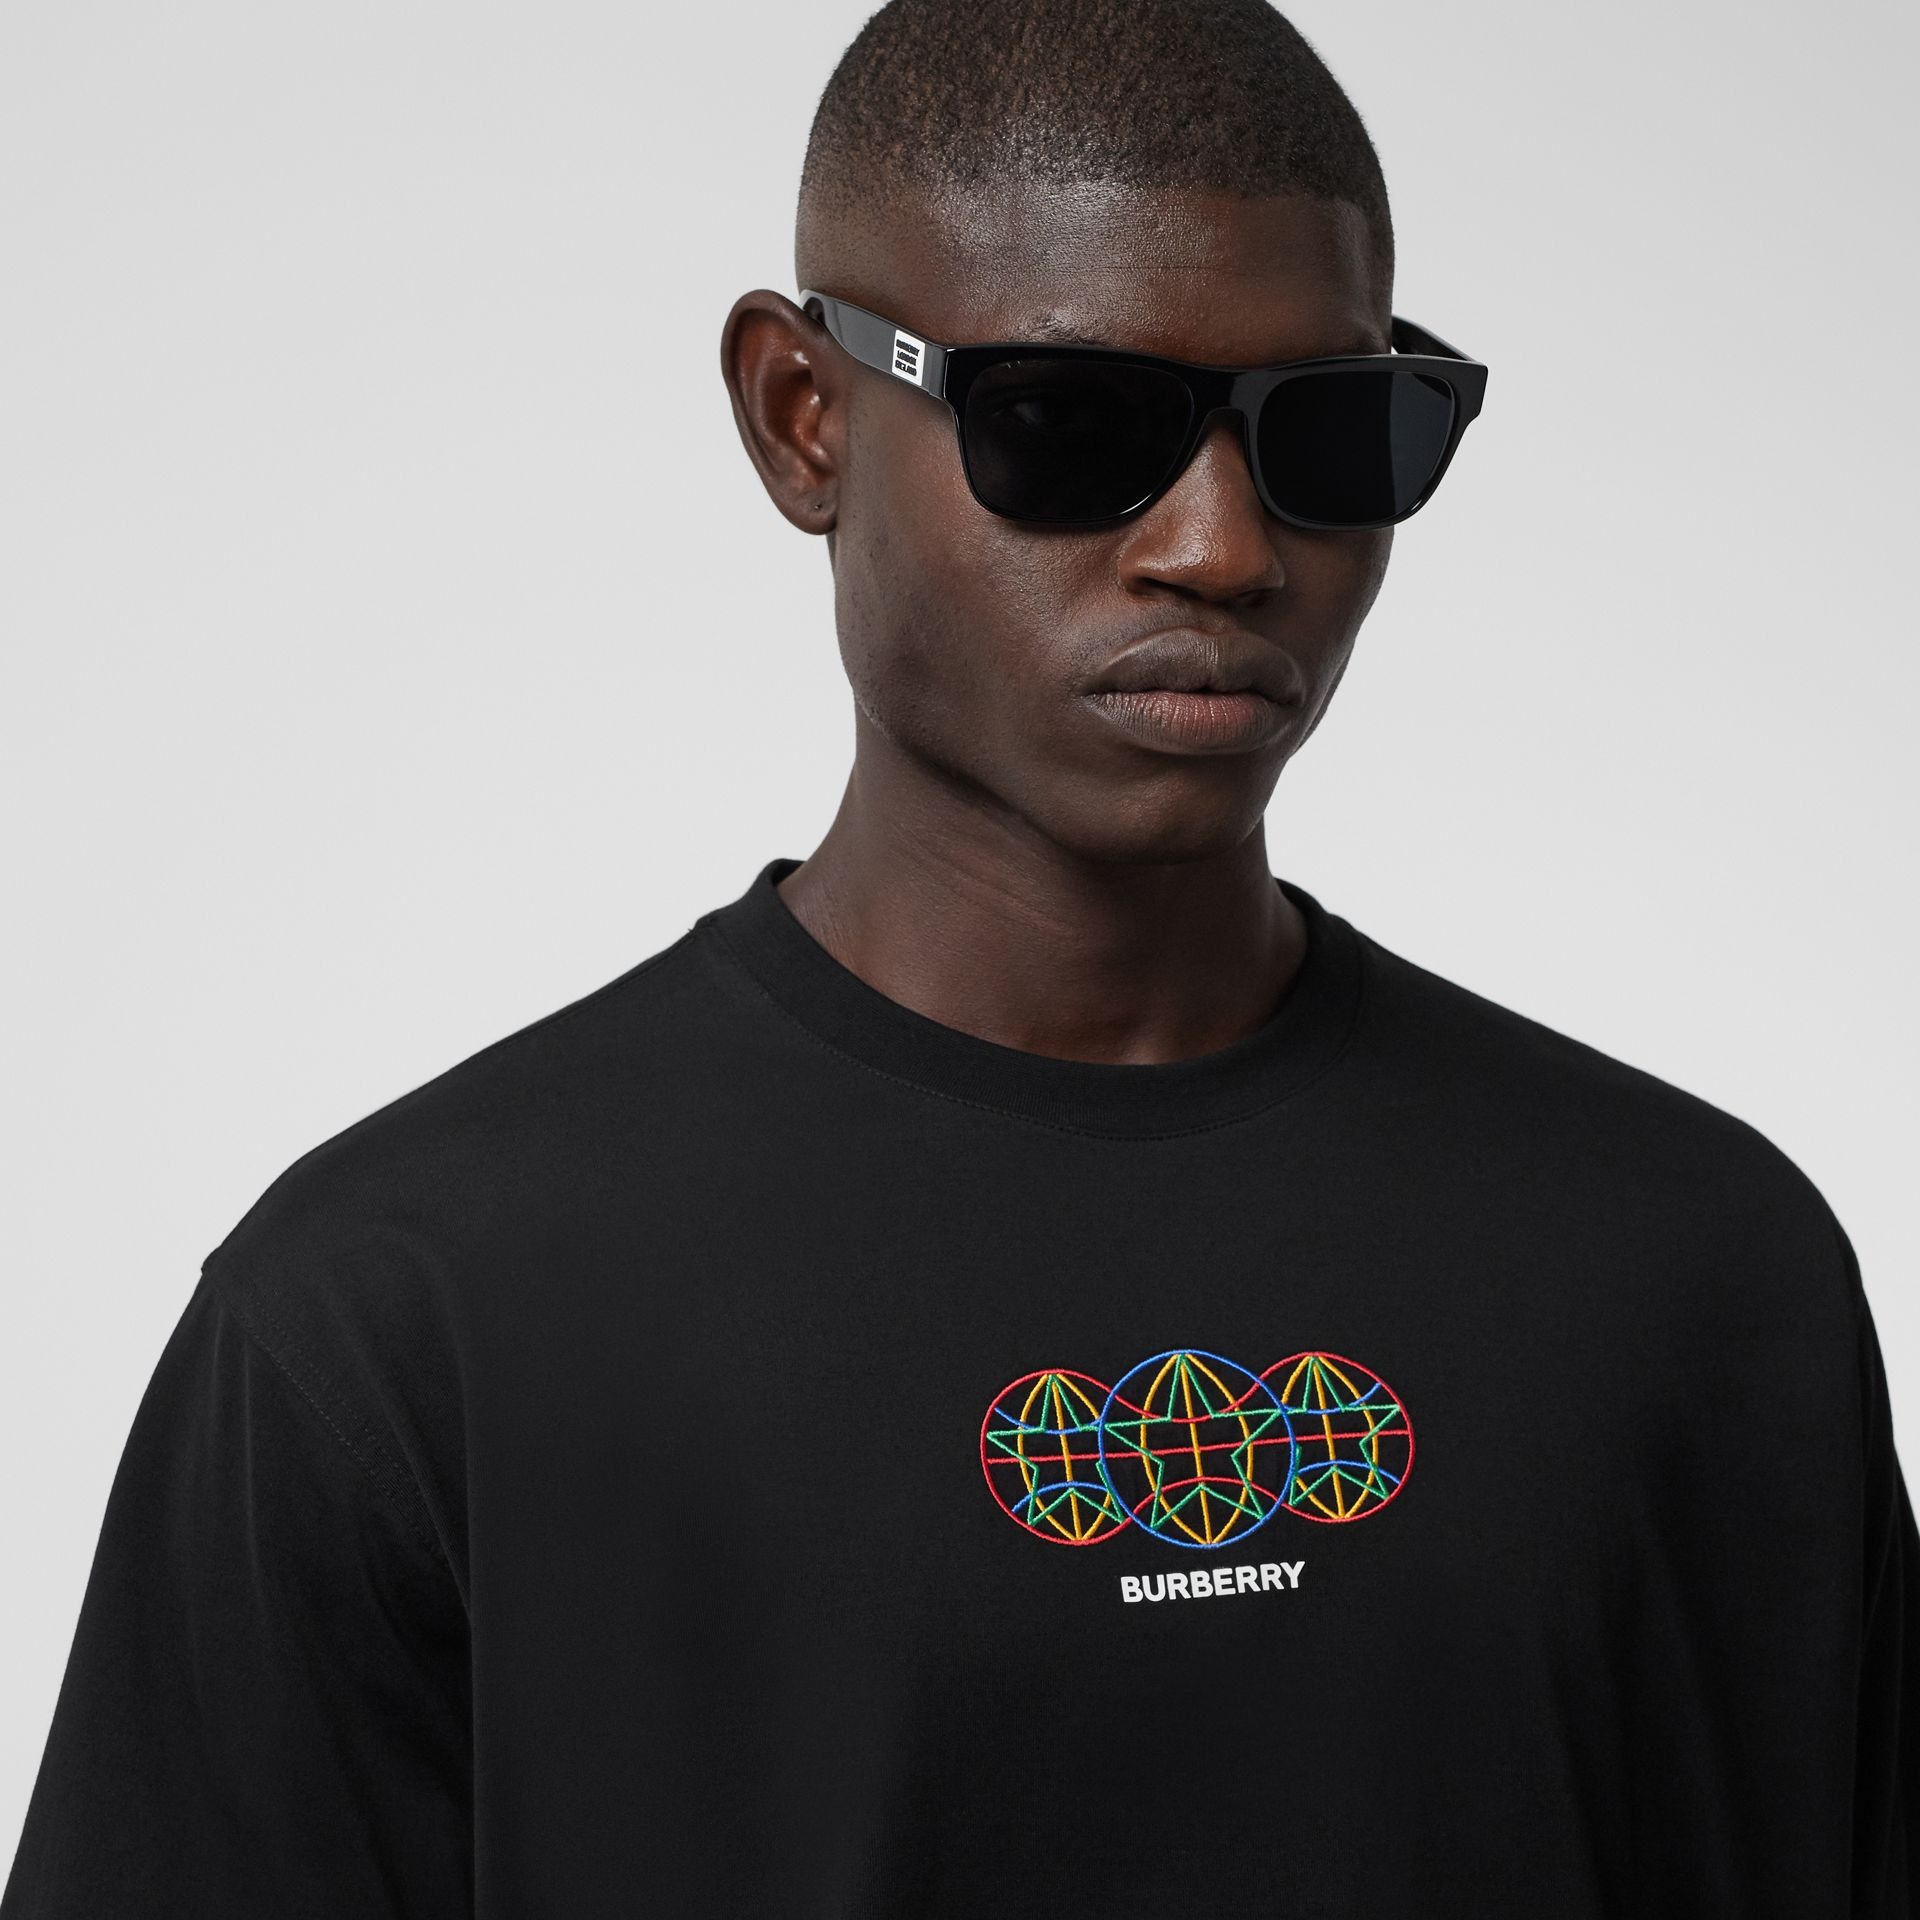 Embroidered Globe Graphic Cotton Oversized T-shirt in Black - Men | Burberry - gallery image 1